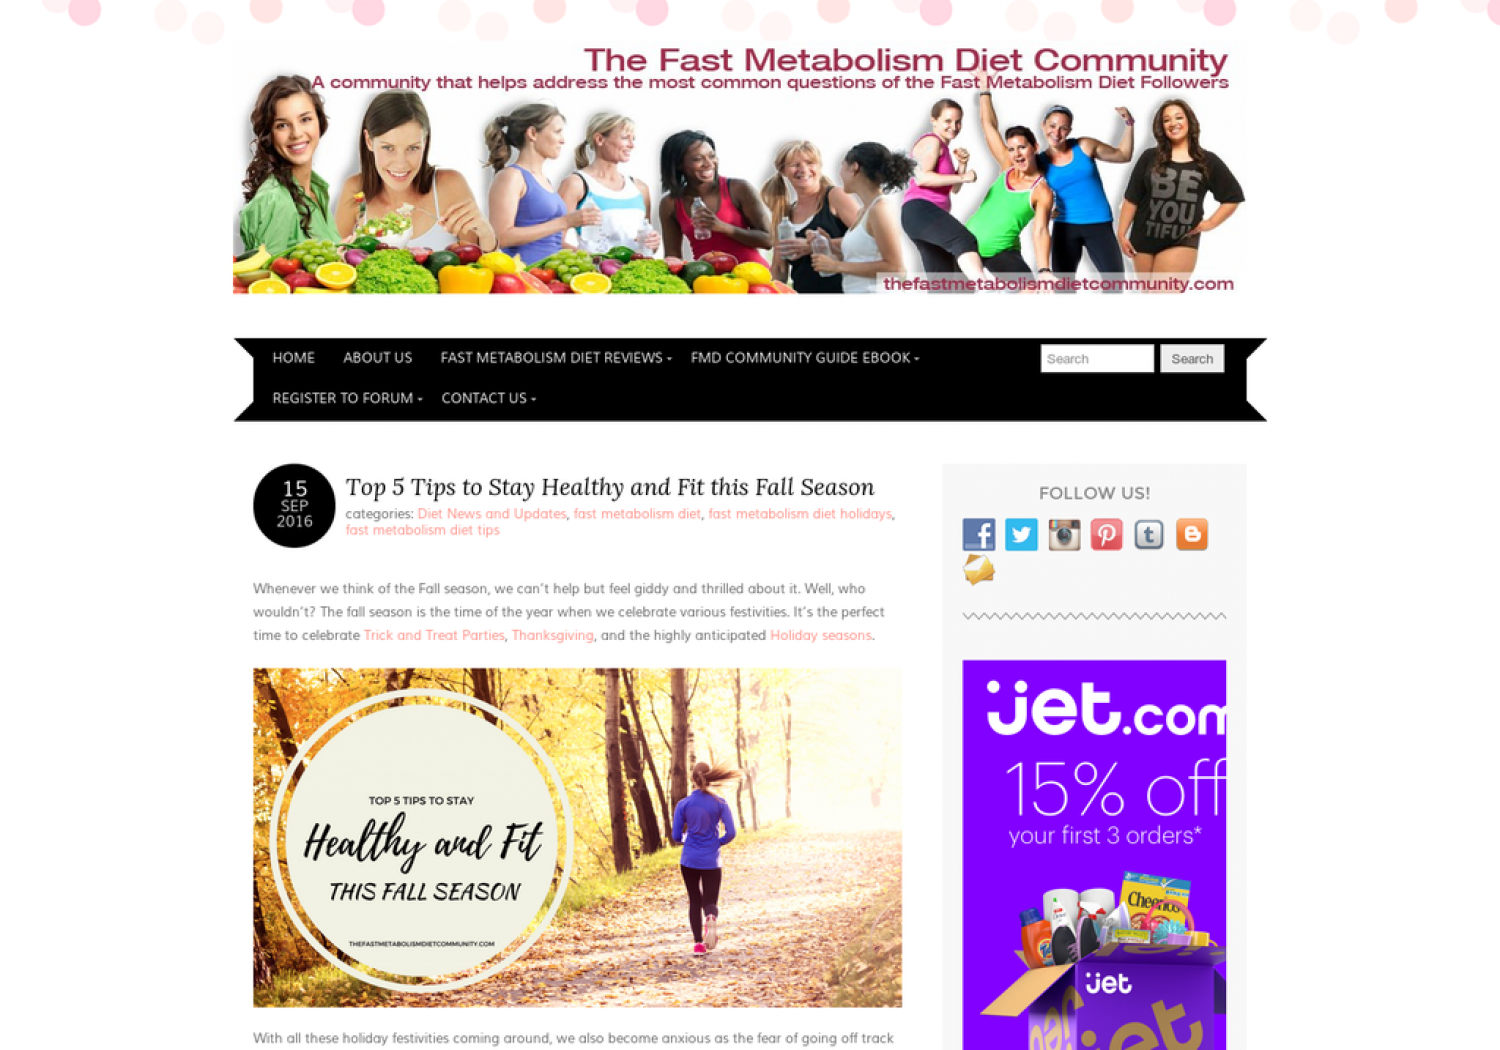 Top 5 Tips to Stay Healthy and Fit this Fall Season Infographic